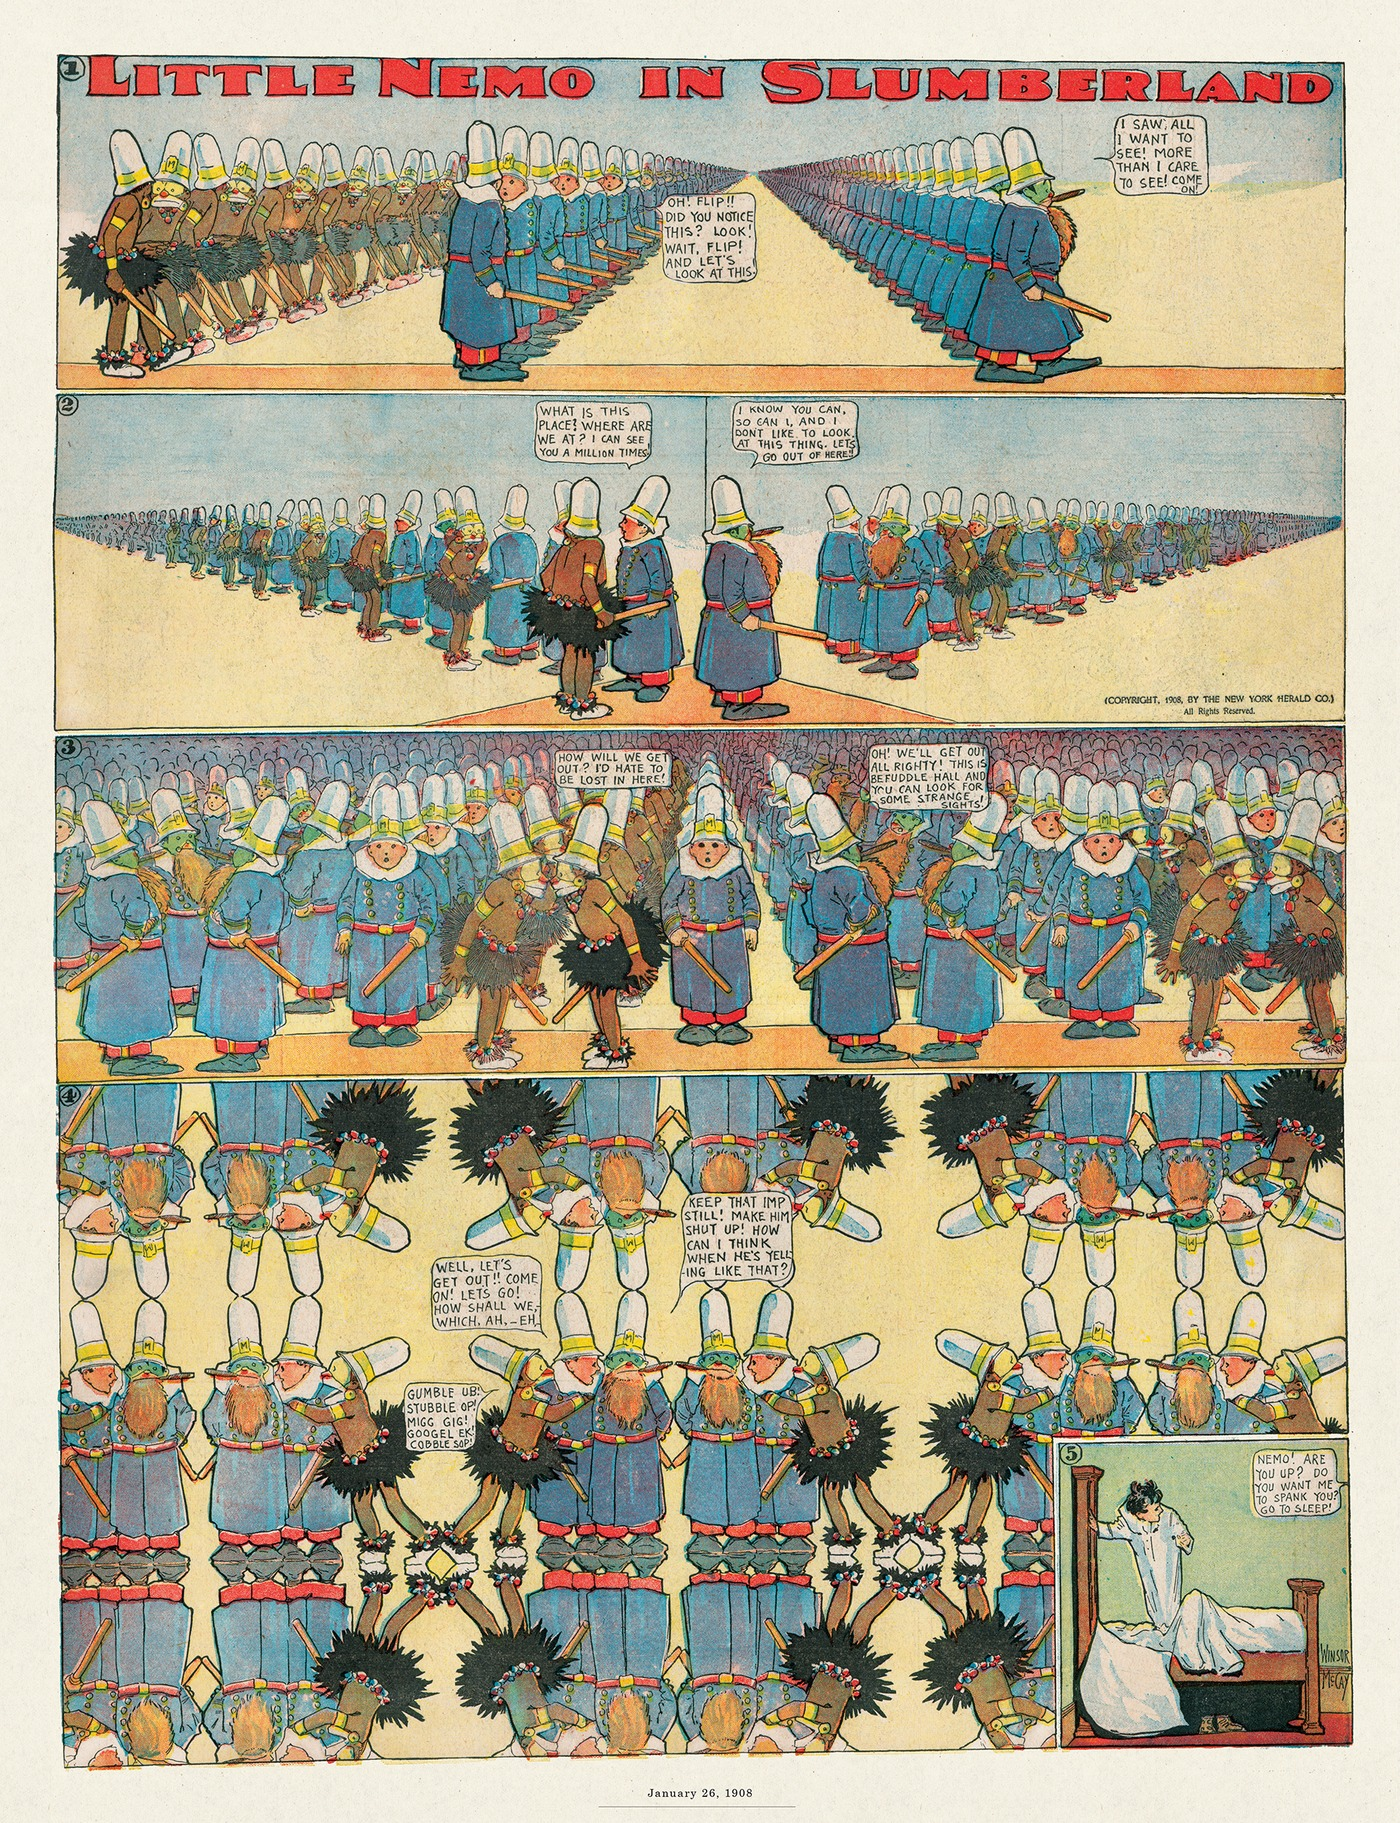 Little Nemo by Winsor McCay on Thu, 10 Sep 2020